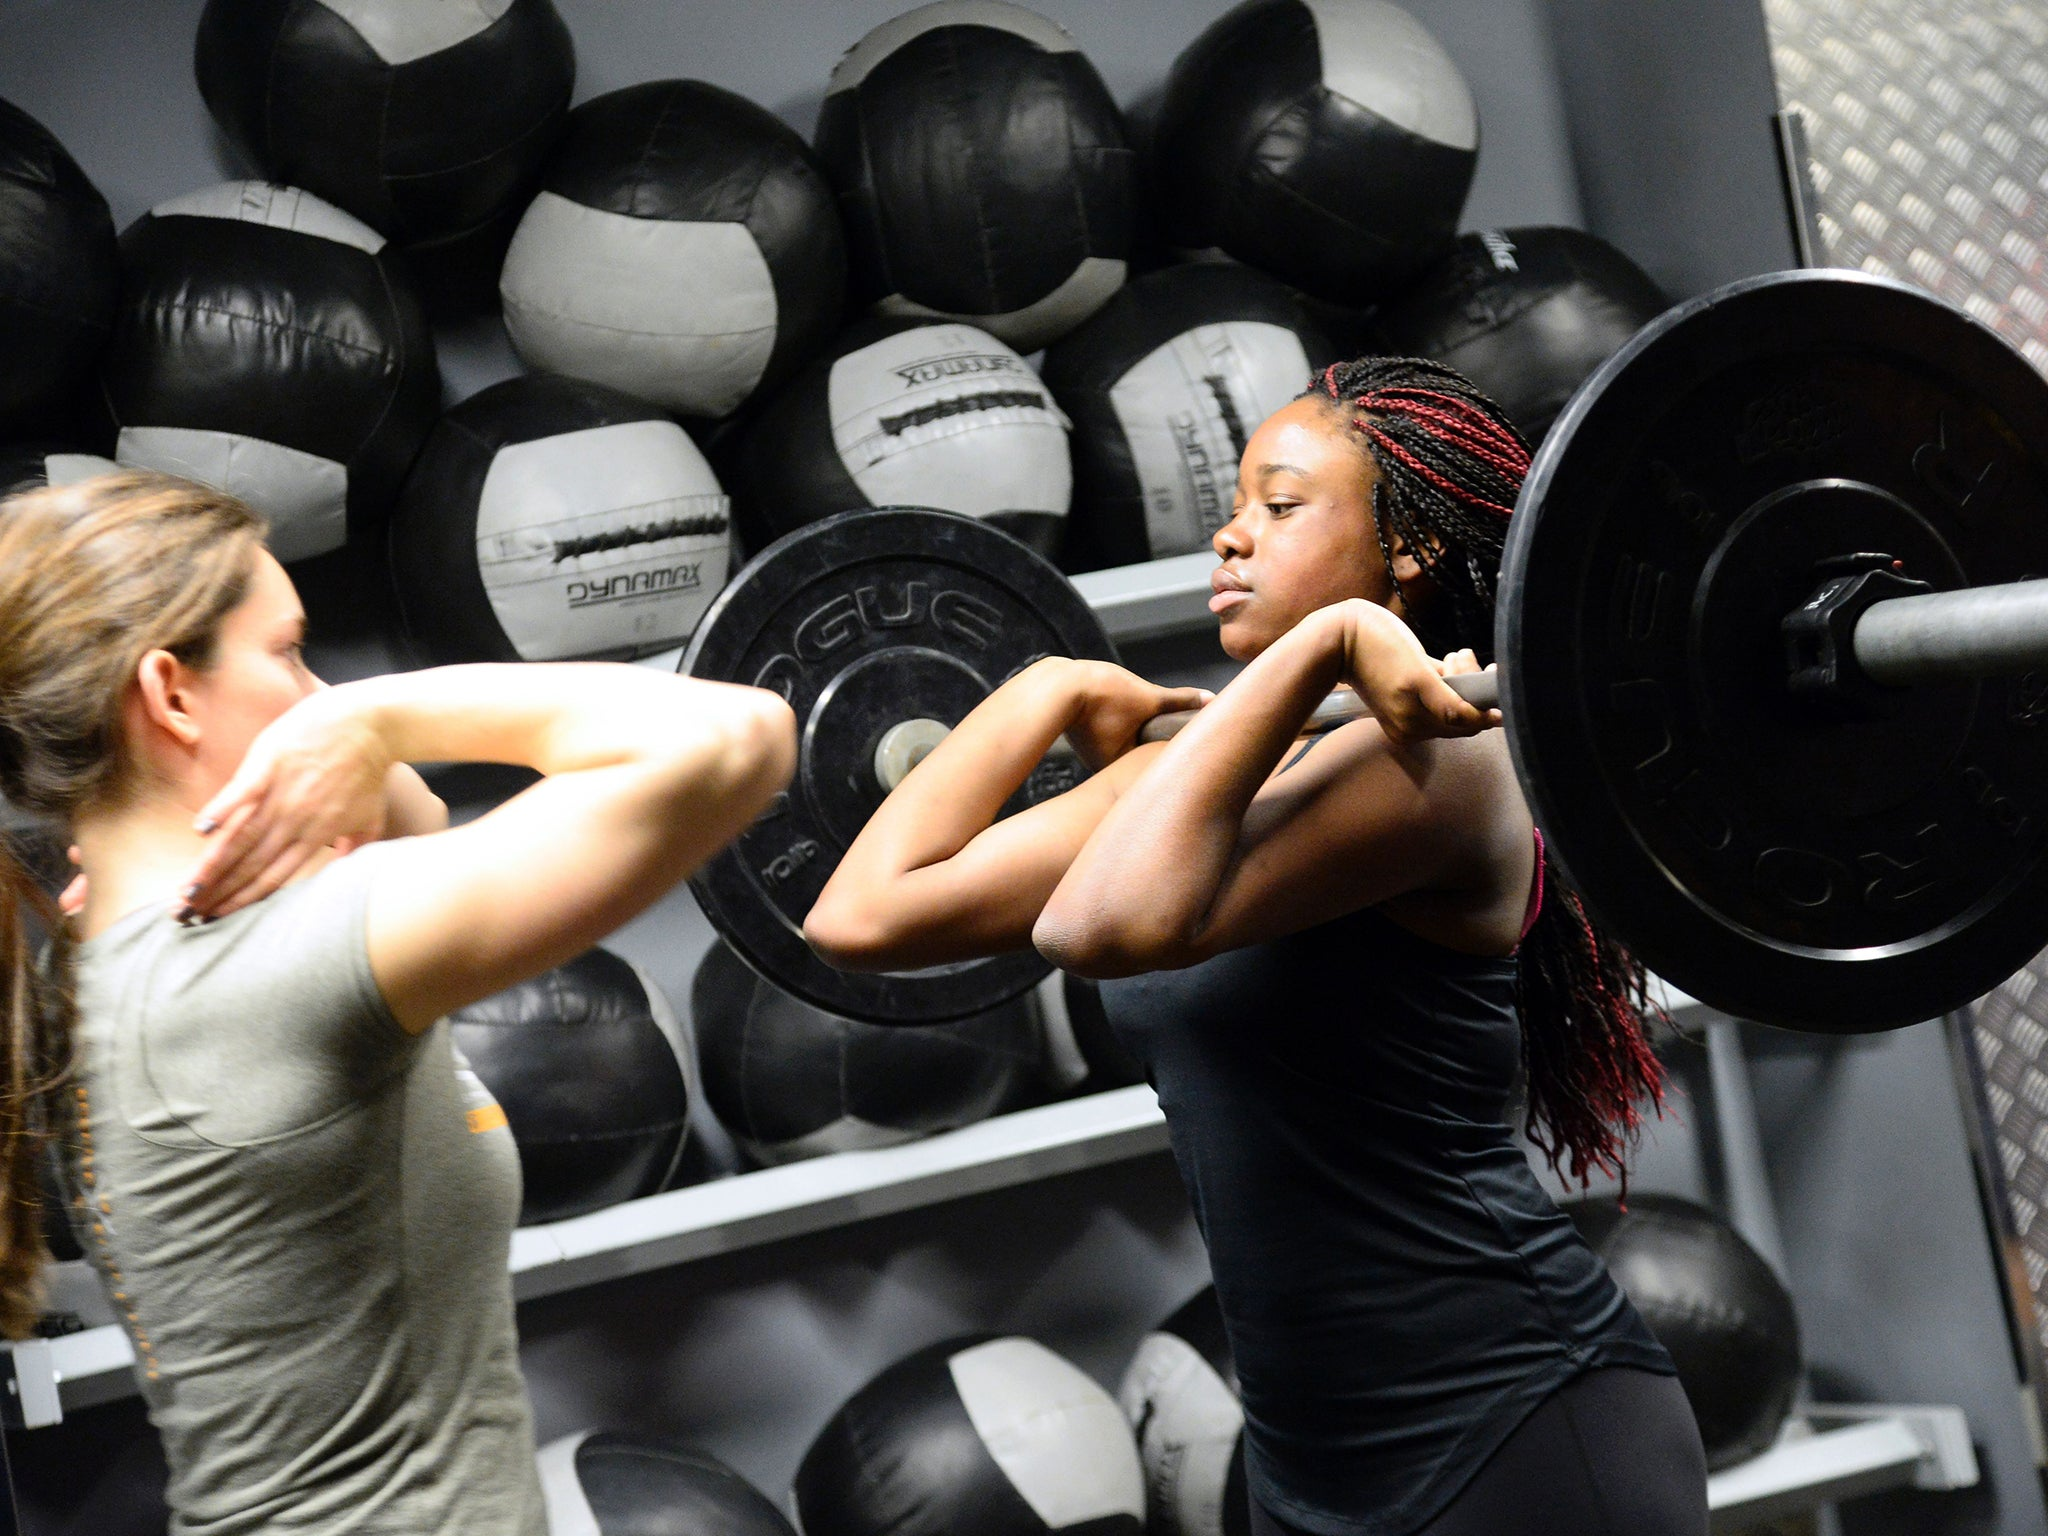 Strength training: Why the time has come to do some heavy lifting | The Independent